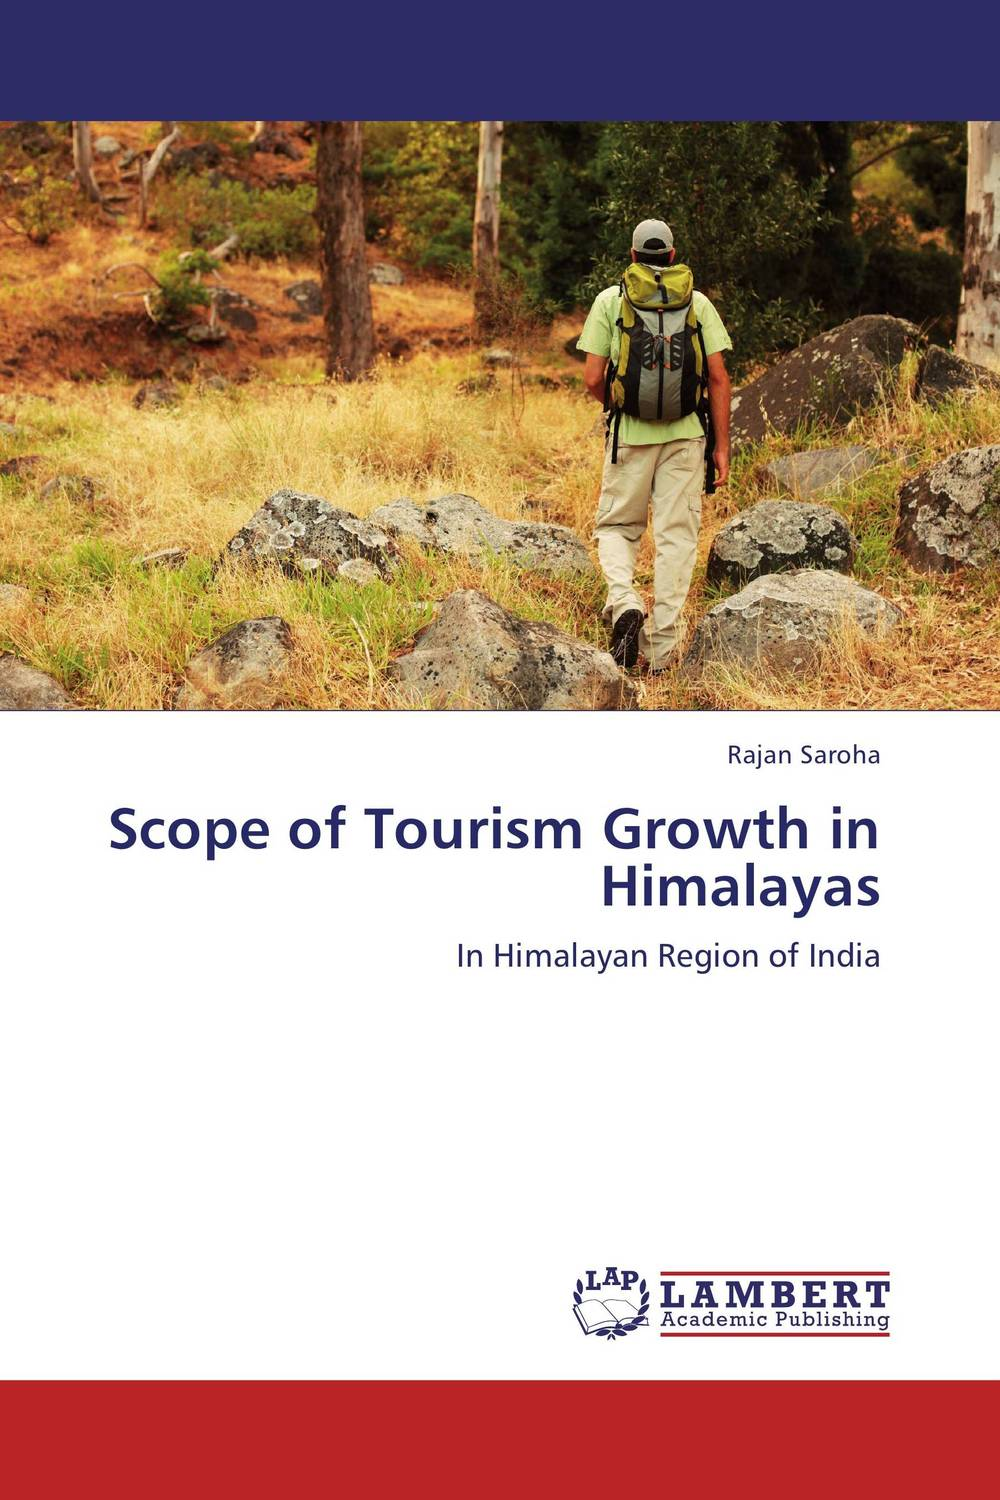 Scope of Tourism Growth in Himalayas dr pranam dhar and monalisa maity growth of travel and tourism industry